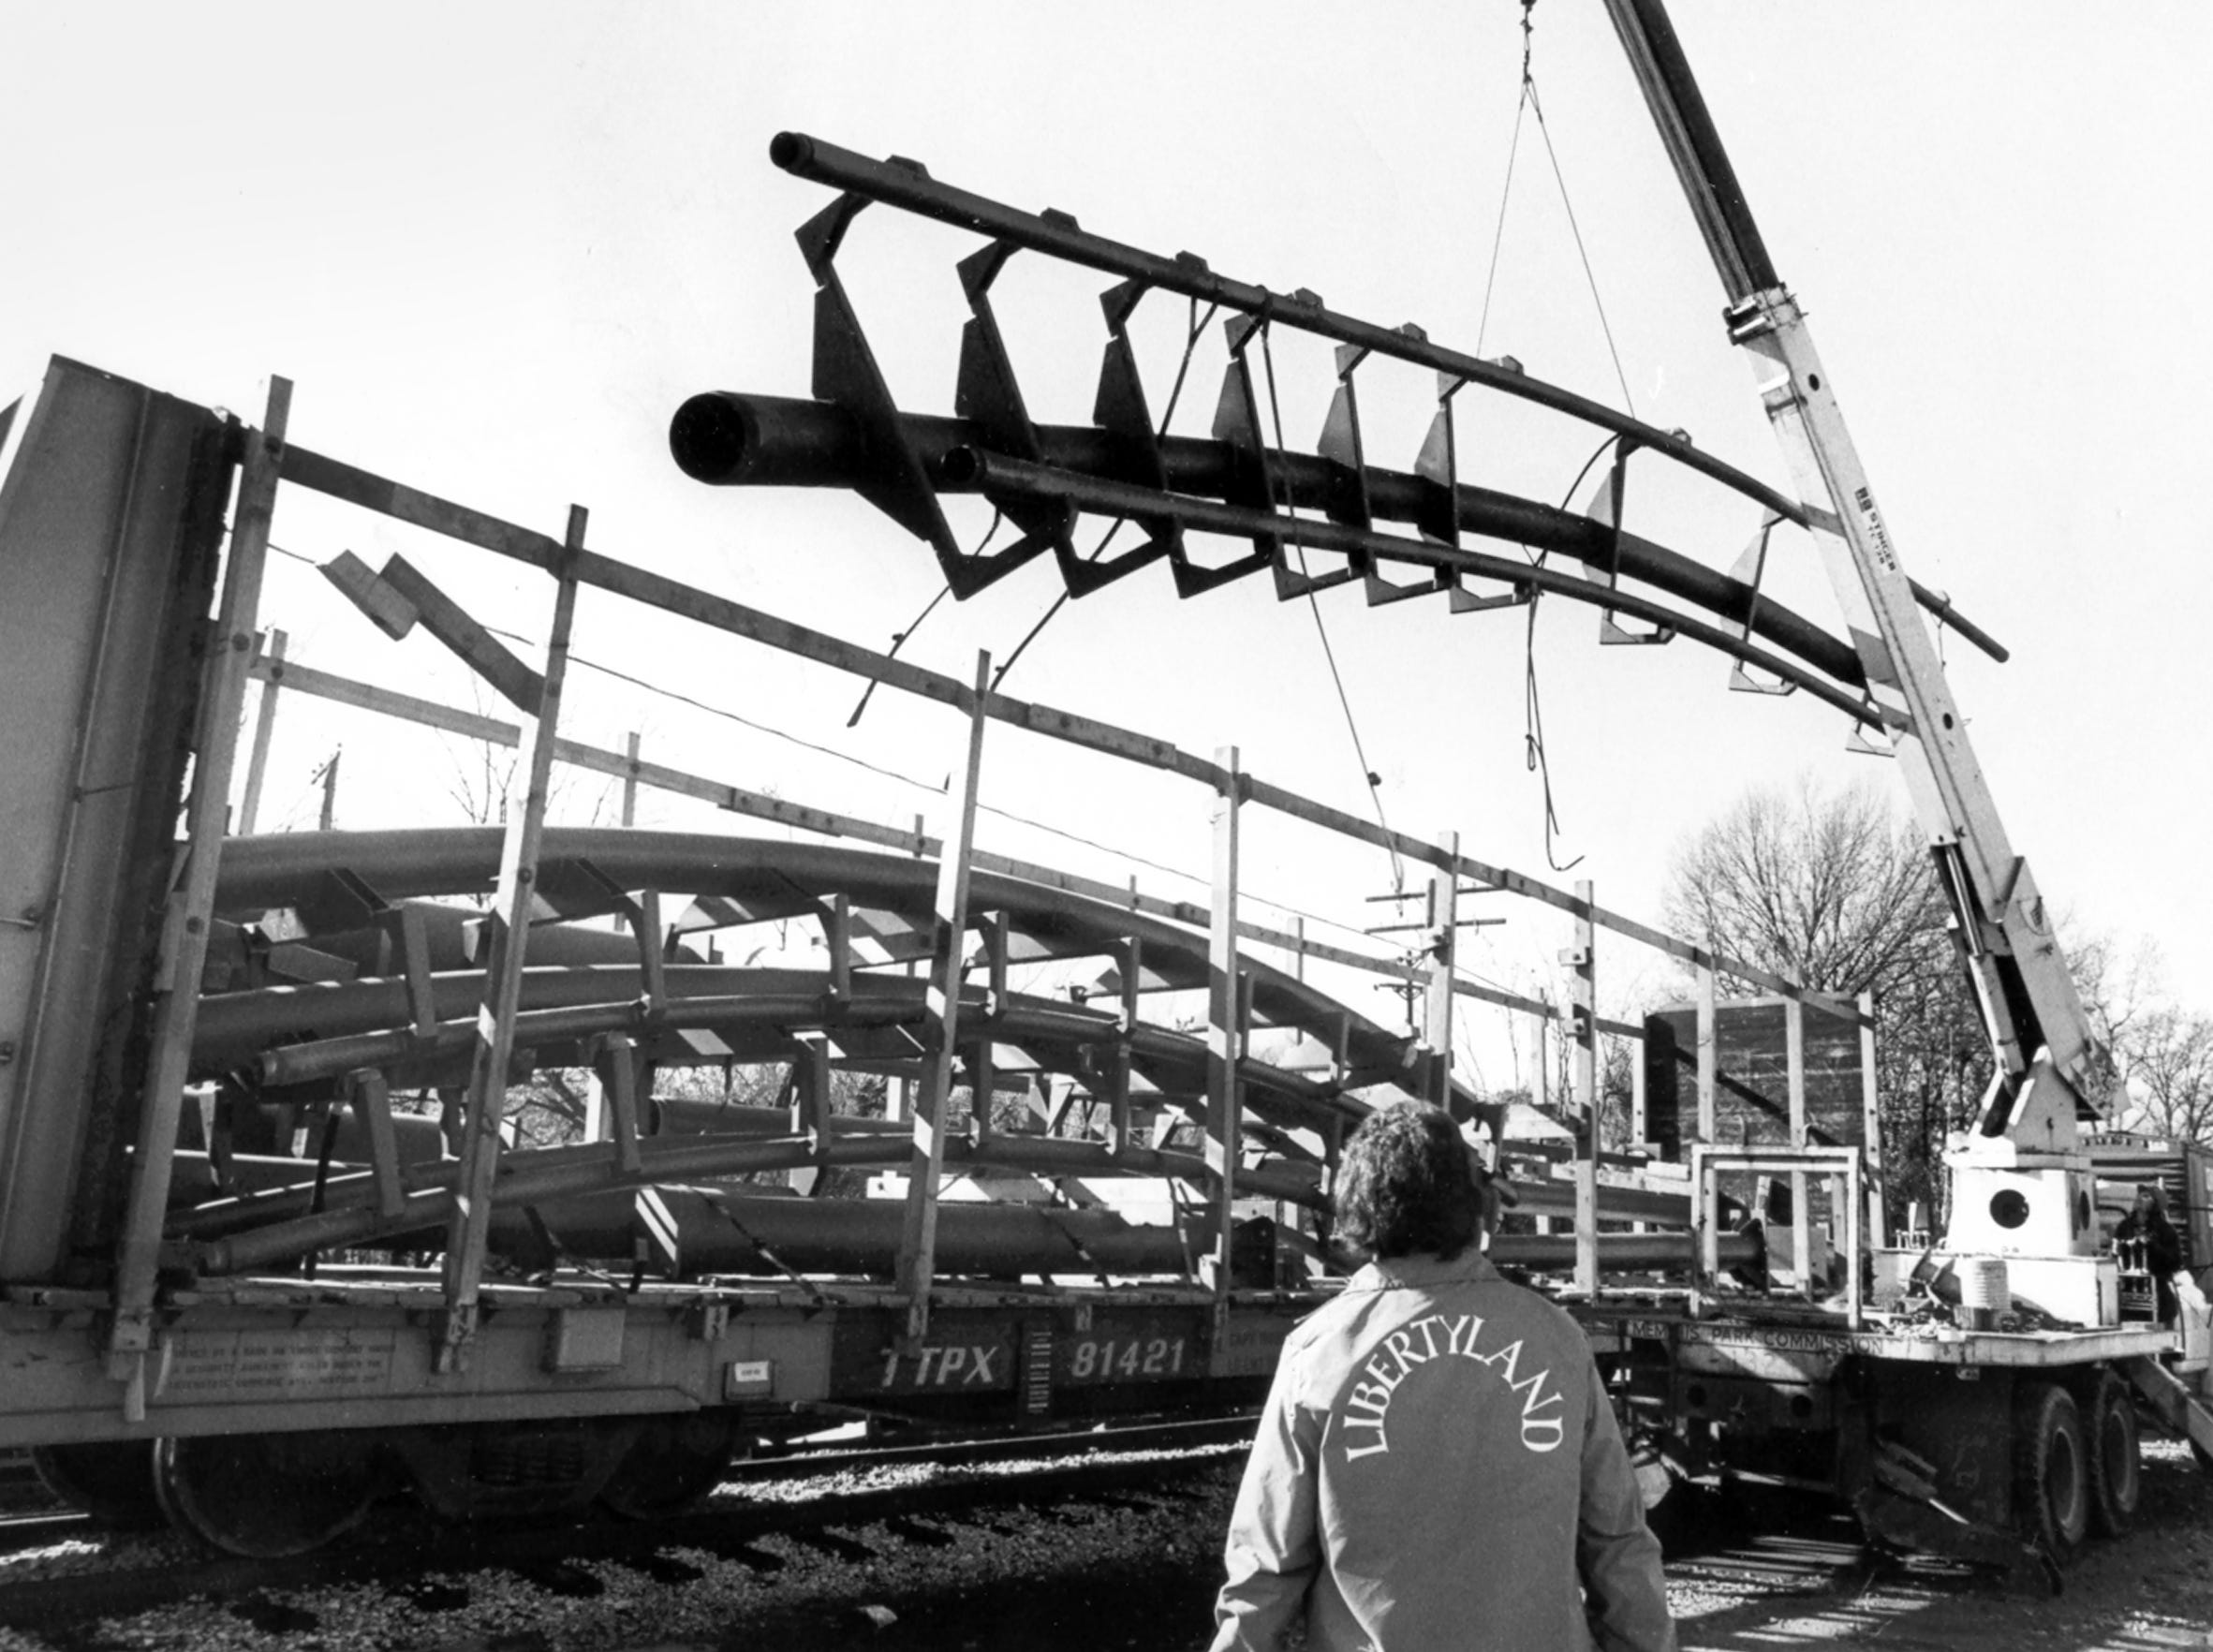 """Ride mechanic Joe Spuryer watches as """"The Revolution"""" is unloaded at the Southern Railroad yard on Dec. 14, 1978. The new $1.7 million ride for Libertyland required 16 cars to deliver the ride and parts. Workers were hoping to finish construction by the park's yearly opening in March."""